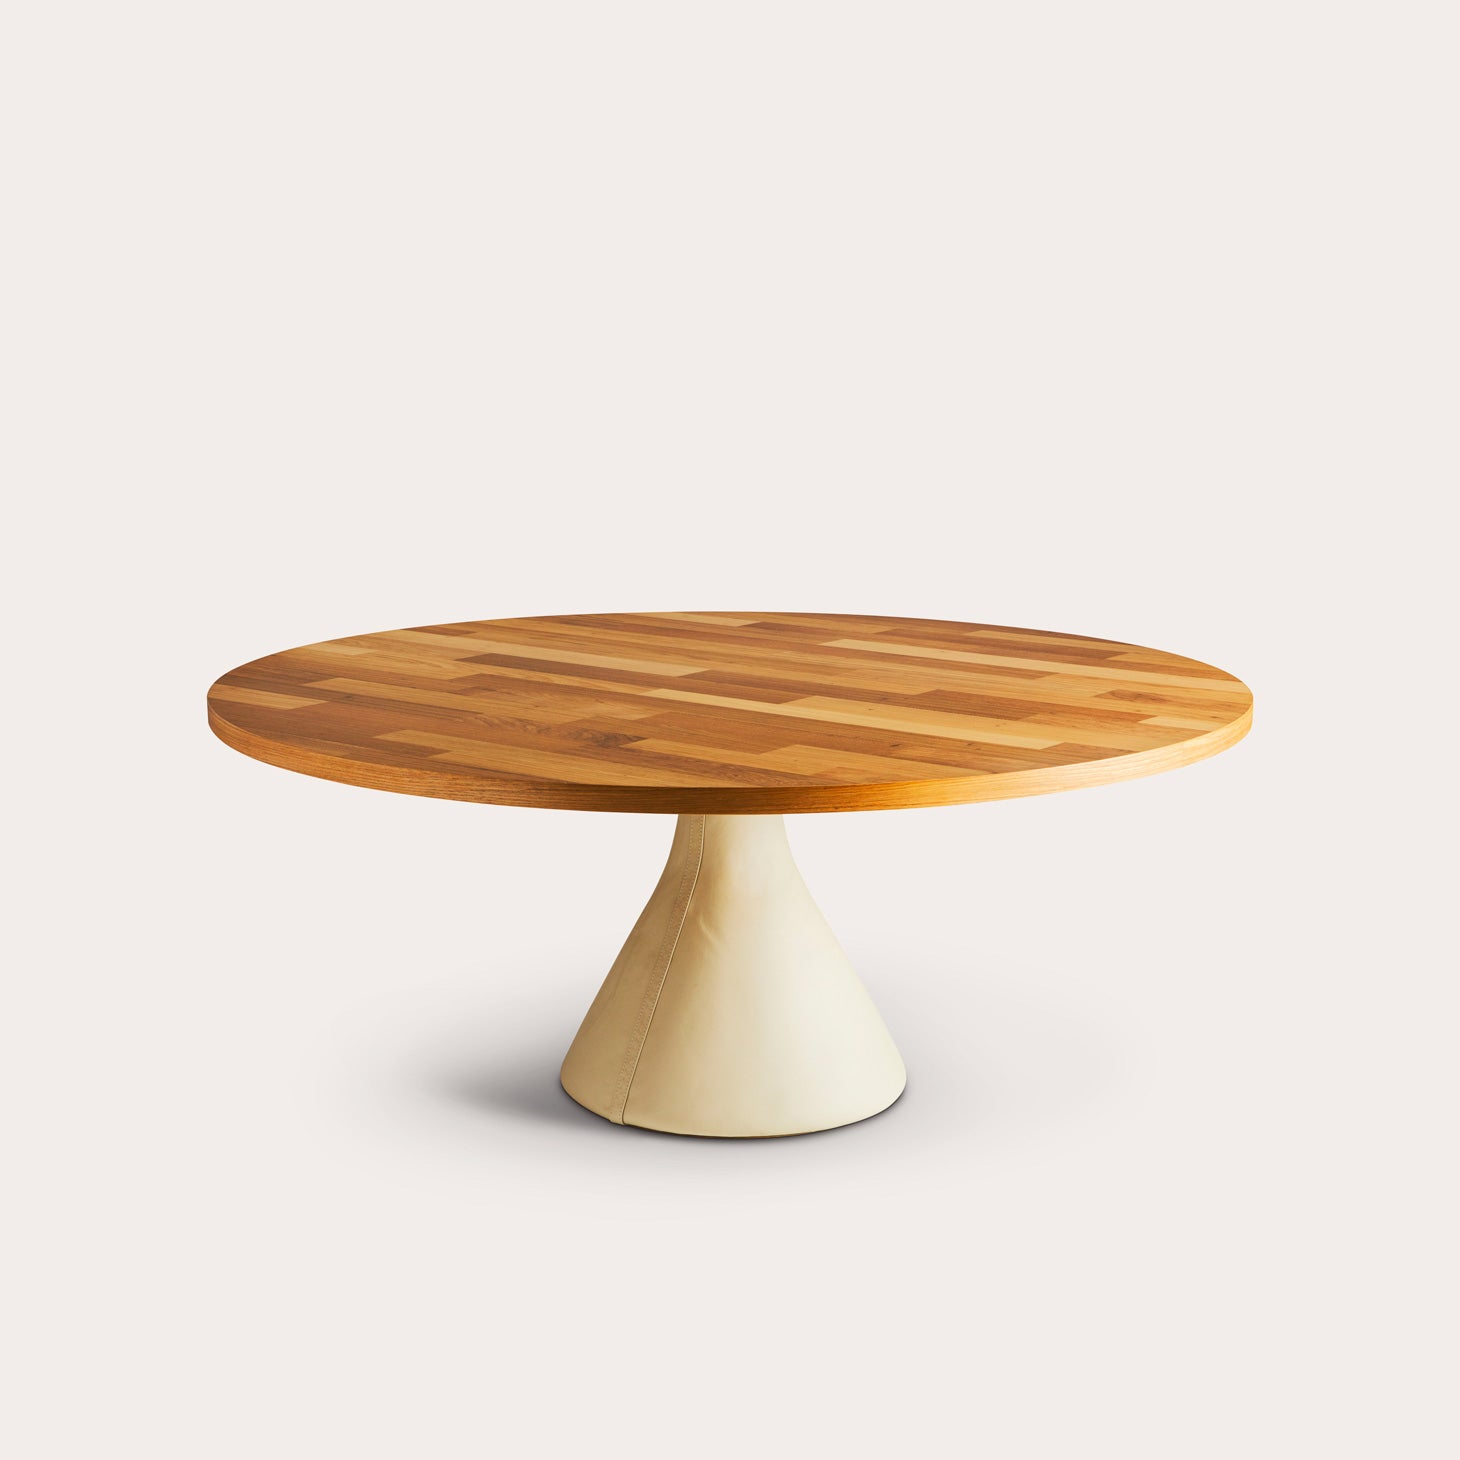 Guaruja Dining Table Tables Jorge Zalszupin Designer Furniture Sku: 003-230-10149